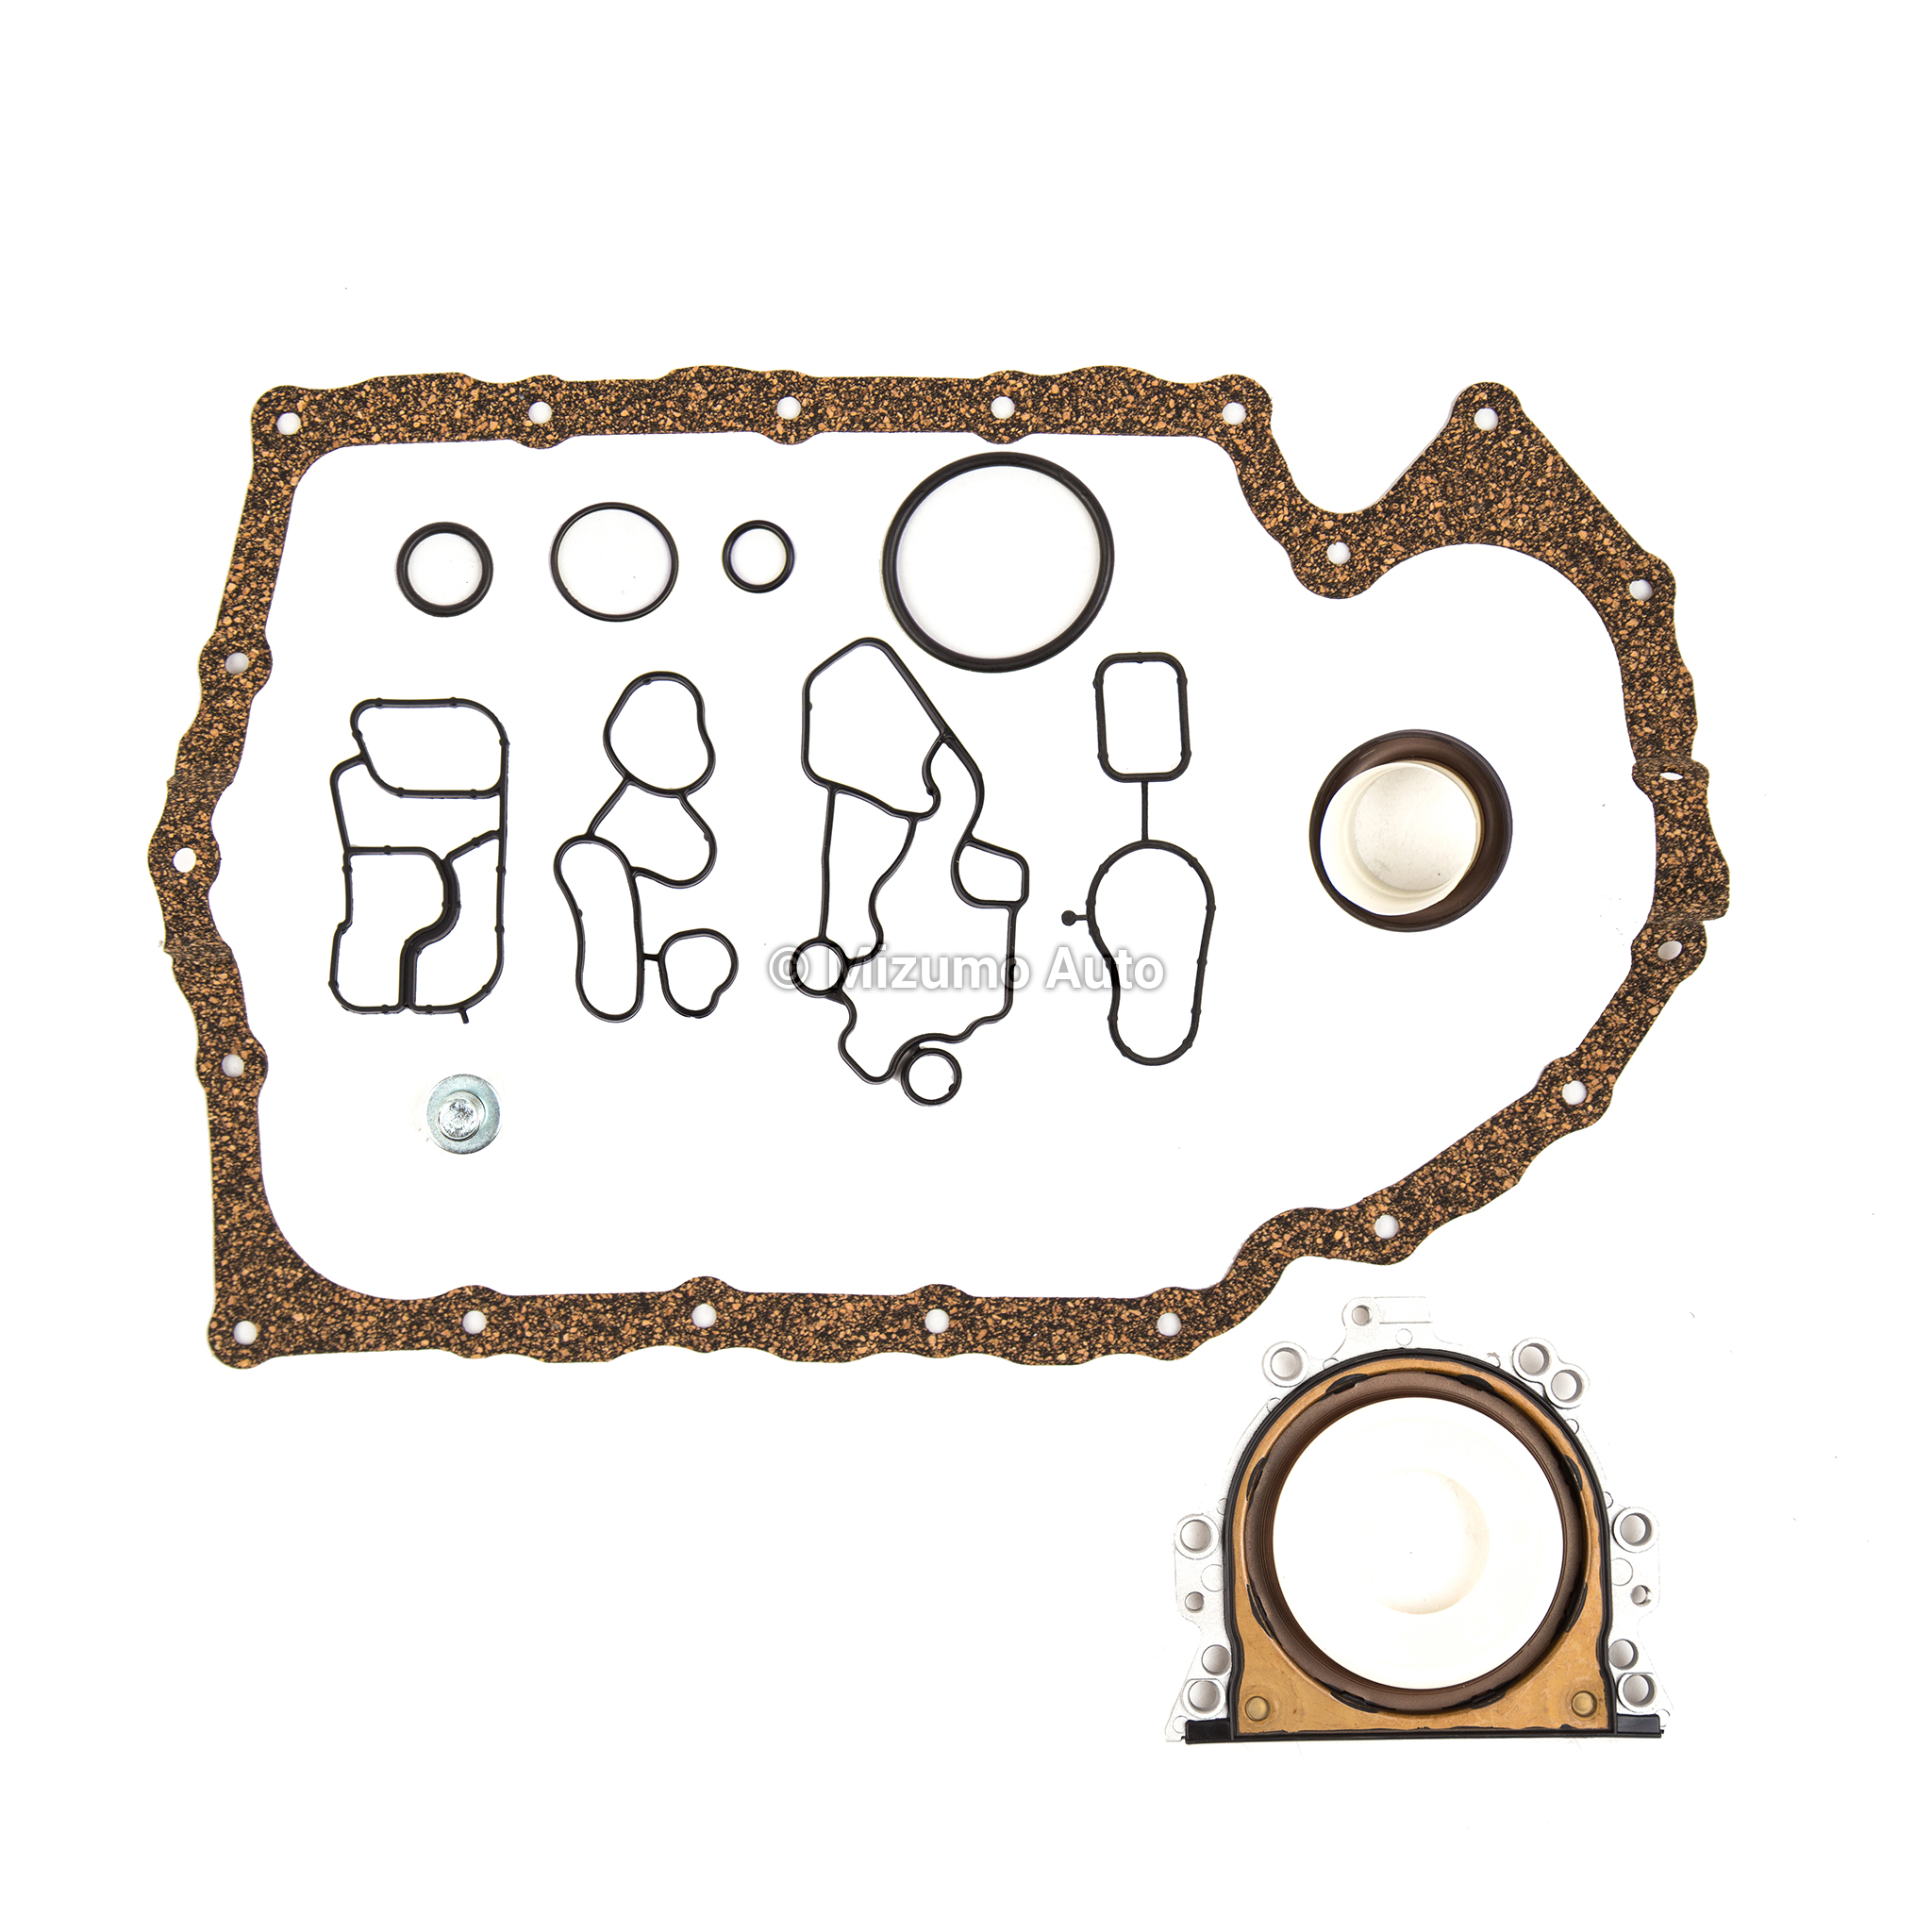 Full Gasket Set Fit 05-11 Audi A3 A4 Quattro Q5 Turbo 2.0L DOHC BPY BPG